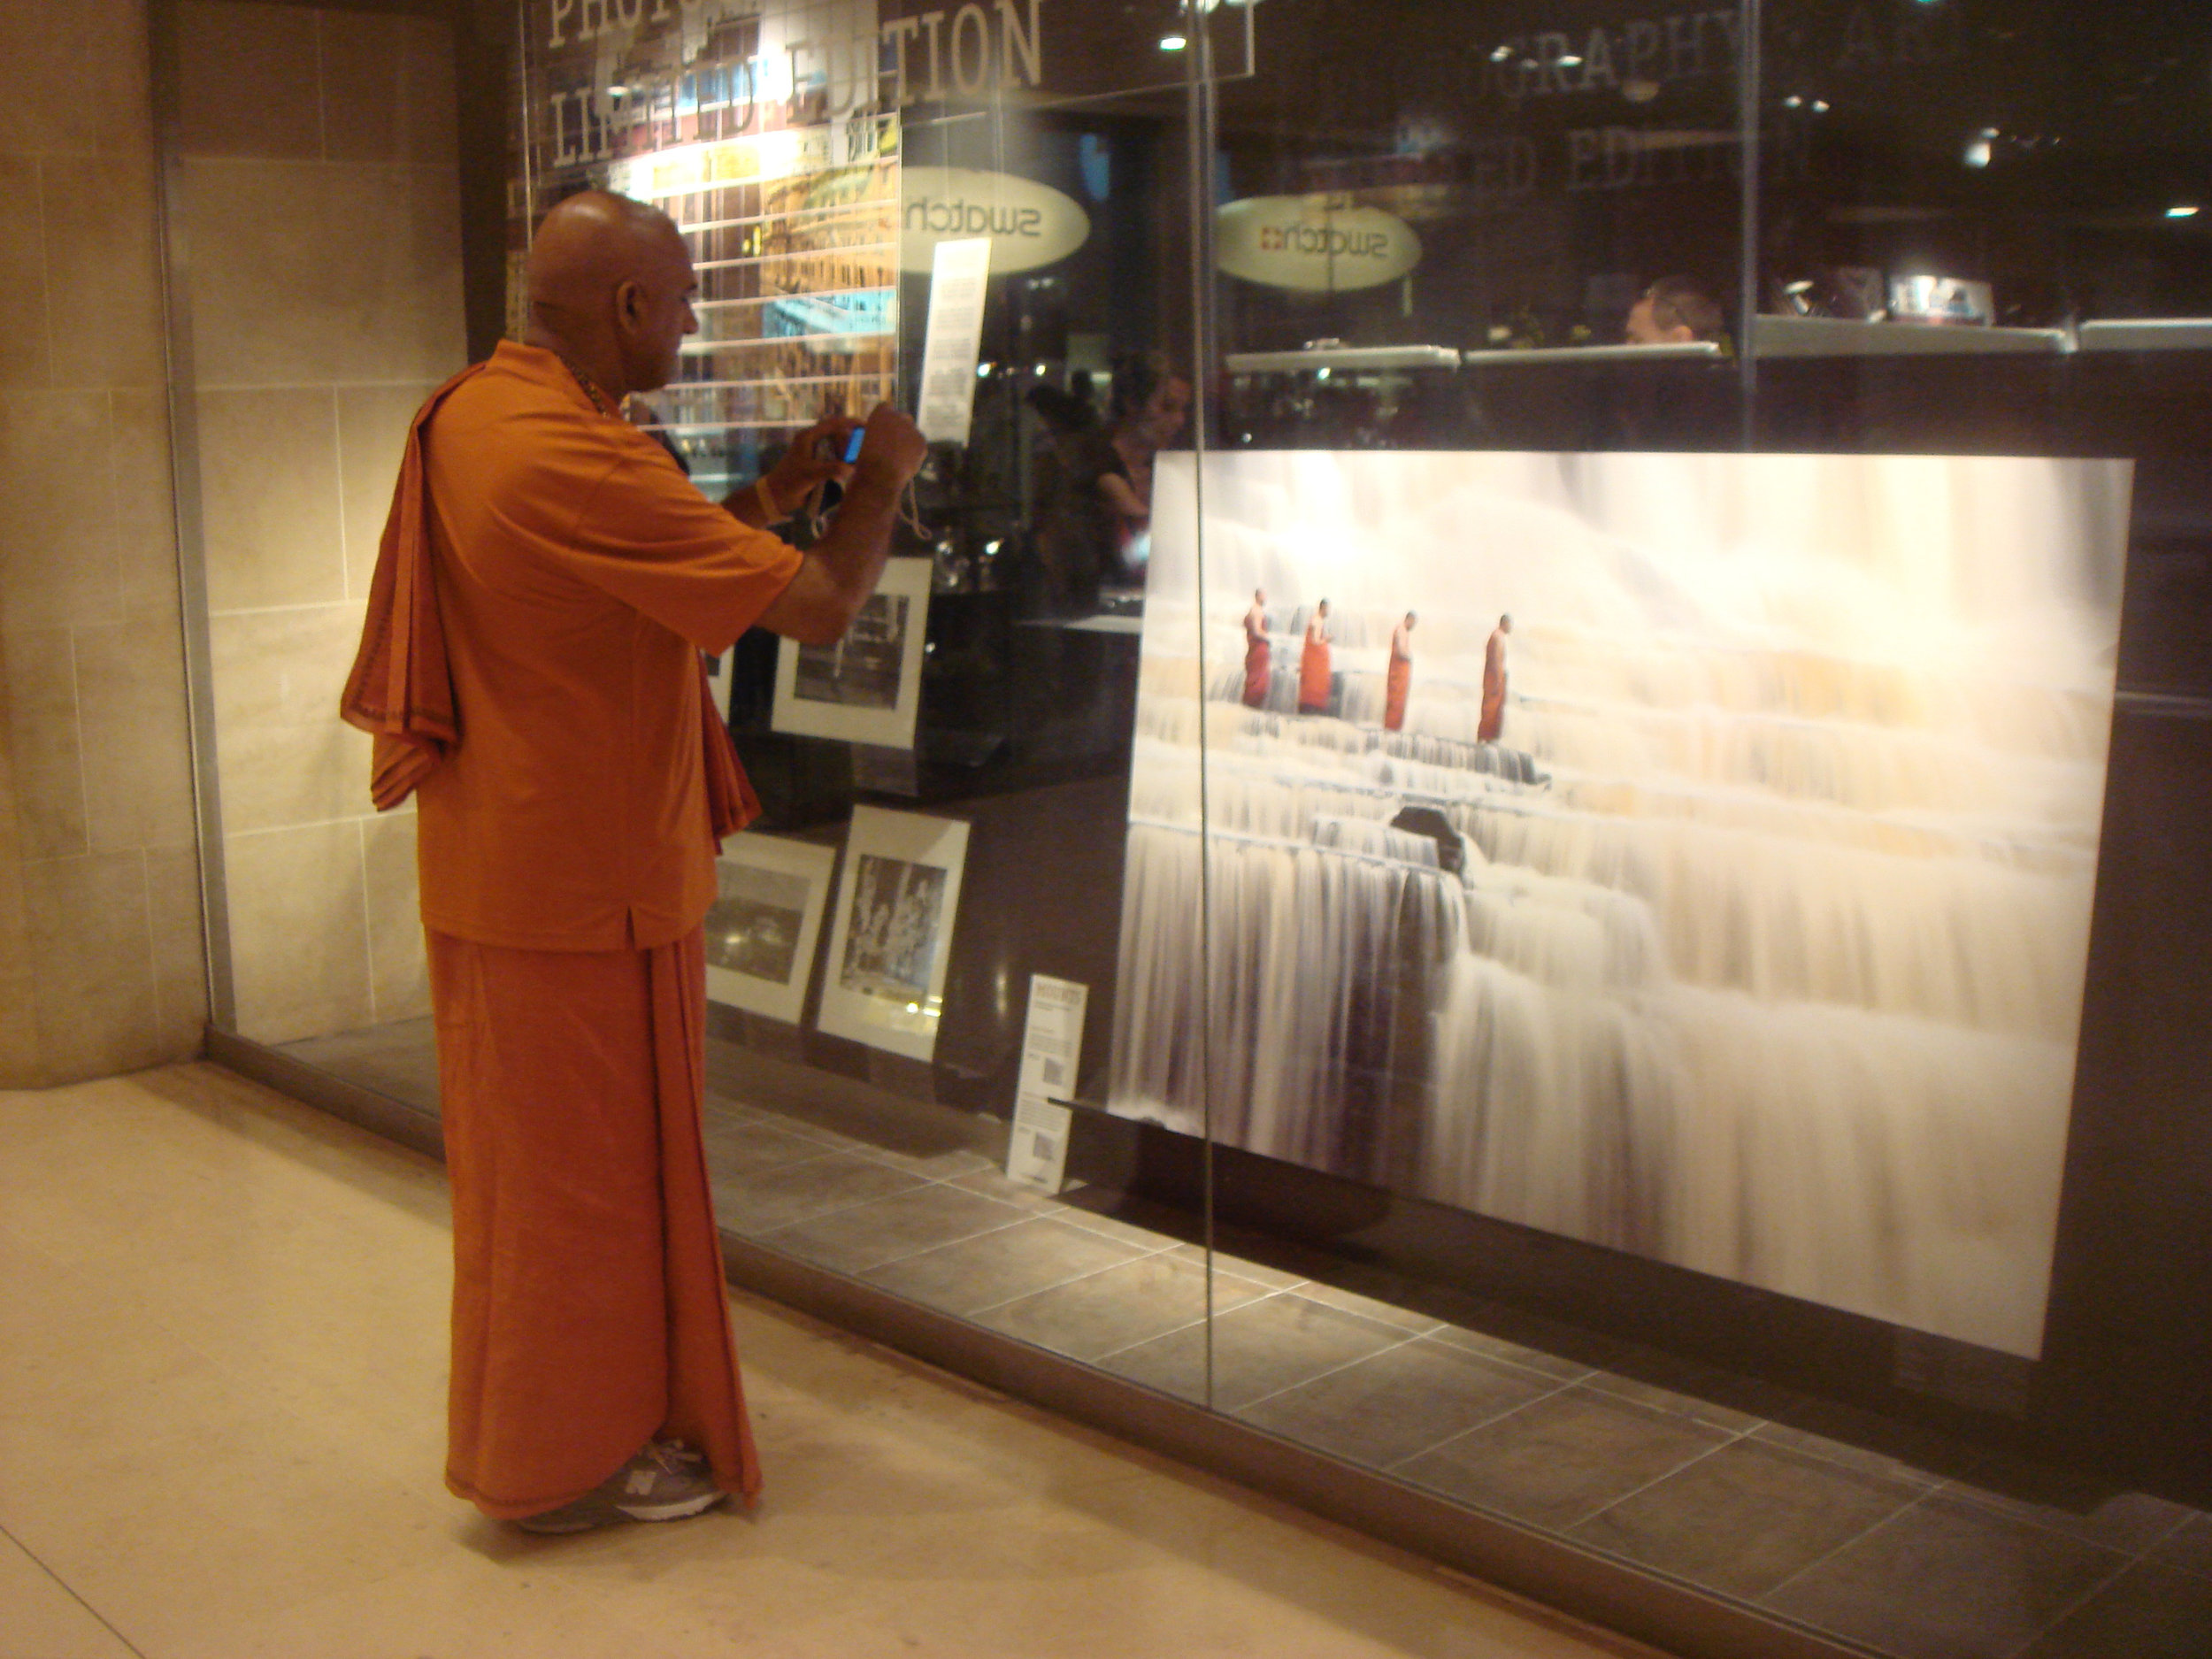 A living, breathing Buddhist monk encounters a large-scale photograph of Buddhist monks crossing a stream. Real and still. Makes me think of Verse 15 from the Tao te Ching:   The ancient Masters were profound and subtle.    Their wisdom was unfathomable.    There is no way to describe it;    all we can describe is their appearance.         They were careful    as someone crossing an iced-over stream.    Alert as a warrior in enemy territory.    Courteous as a guest.    Fluid as melting ice.    Shapable as a block of wood.    Receptive as a valley.    Clear as a glass of water.         Do you have the patience to wait    till your mud settles and the water is clear?    Can you remain unmoving    till the right action arises by itself?         The Master doesn't seek fulfillment.    Not seeking, not expecting,    she is present, and can welcome all things.   Stephen Mitchell translation